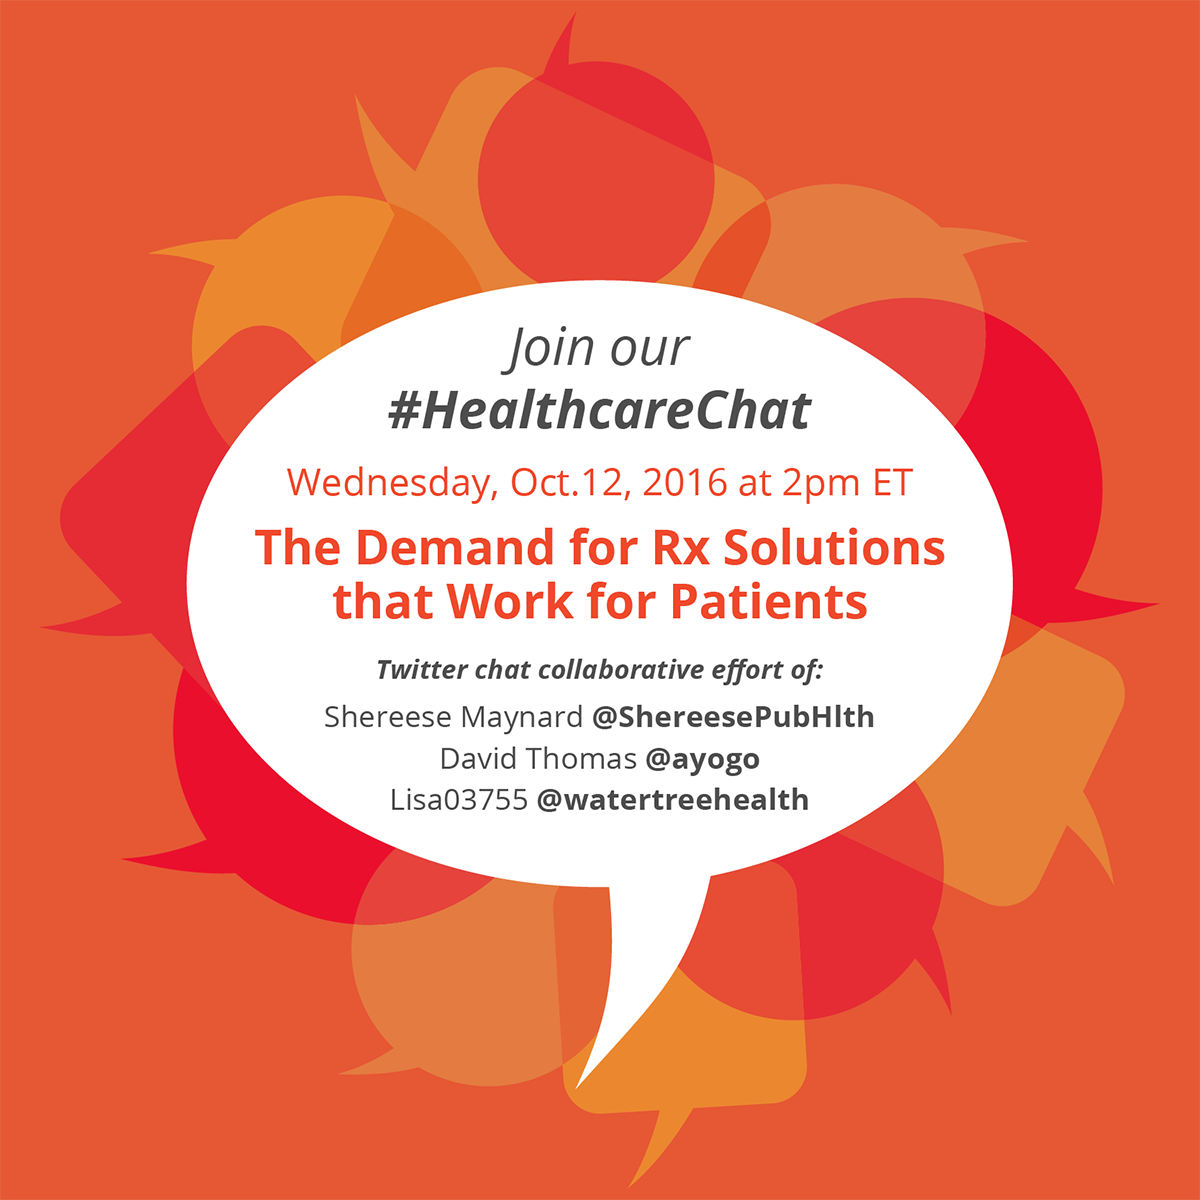 "Ayogo on Twitter: ""Join us Wed. at 2pm est for #HealthcareChat #RX Solutions that work for patients #pharma @ShereesePubHlth @Lisa03755 @watertreehealth https://t.co/lWEAFsJtny"""